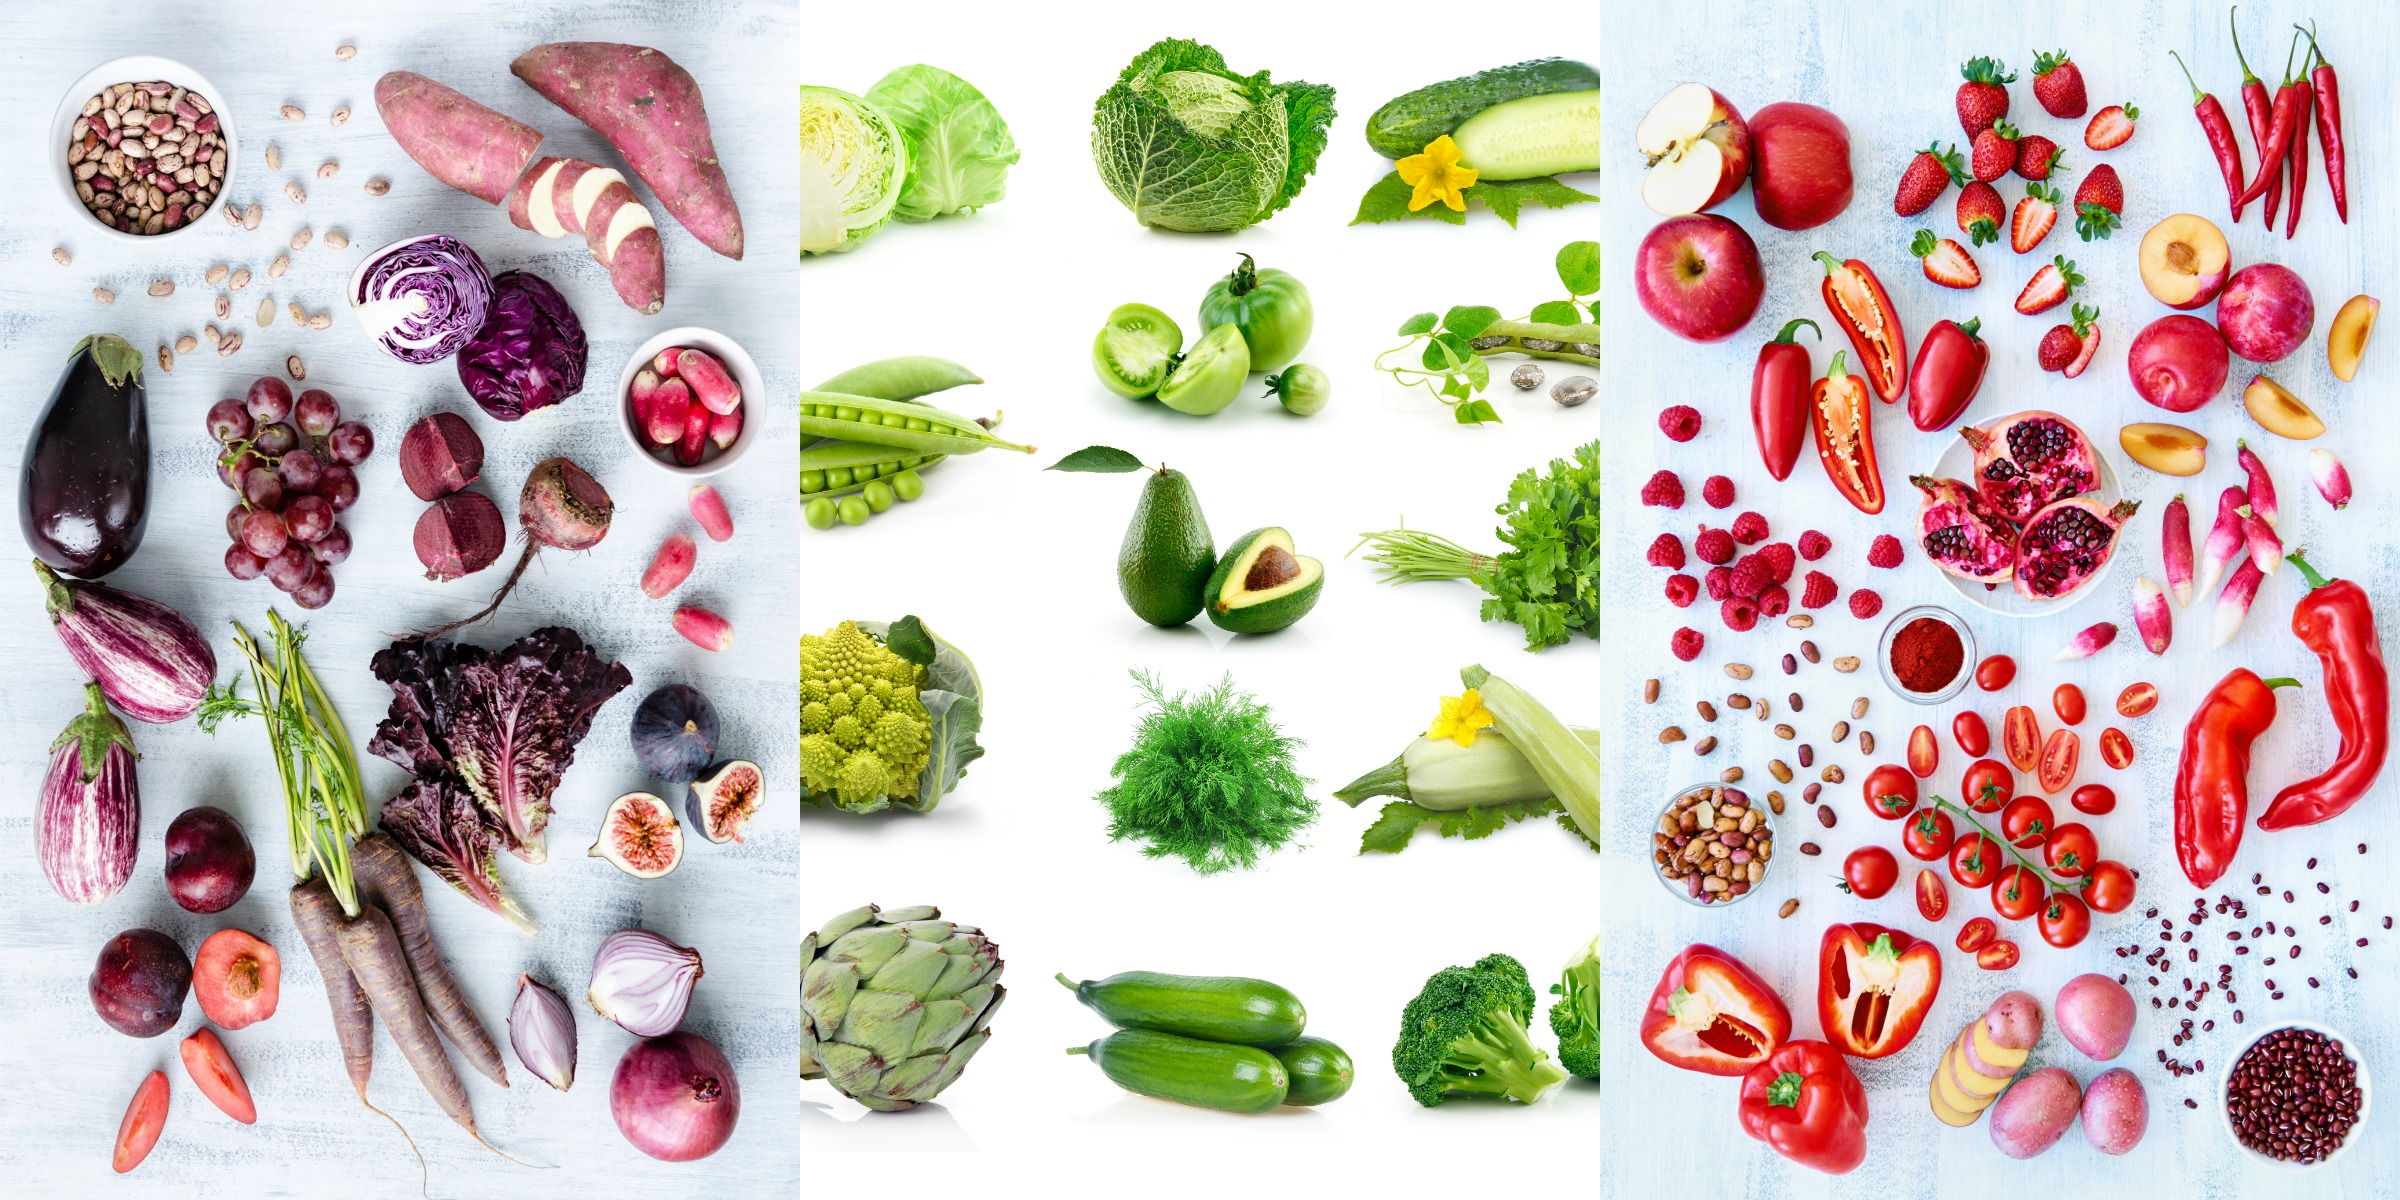 Superfood Collage